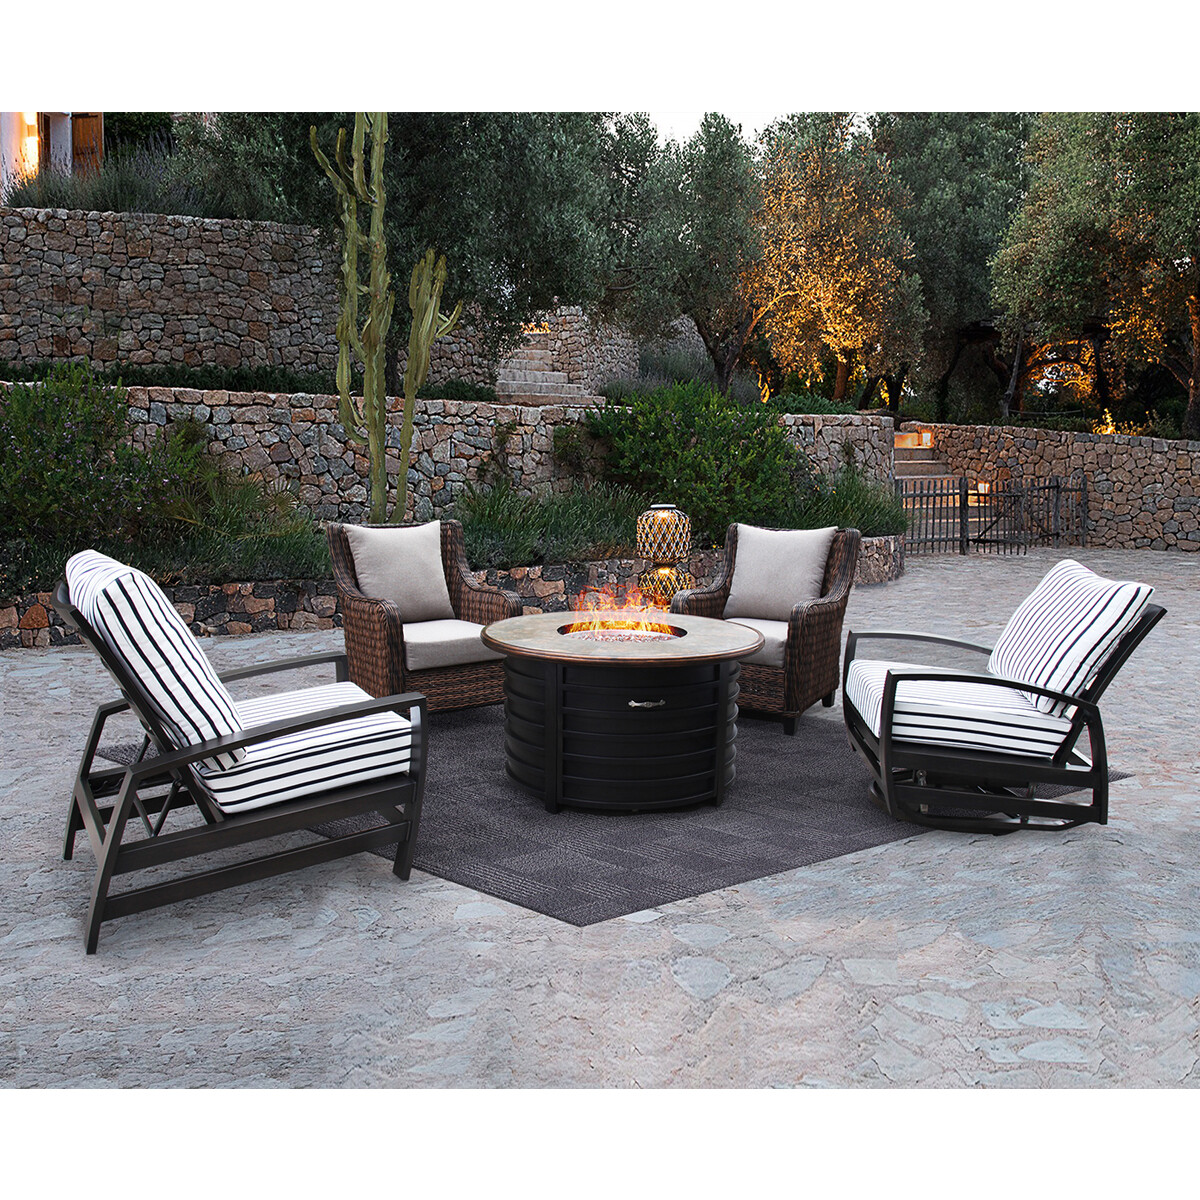 5 Piece Patio Conversation Set with Fire Pit